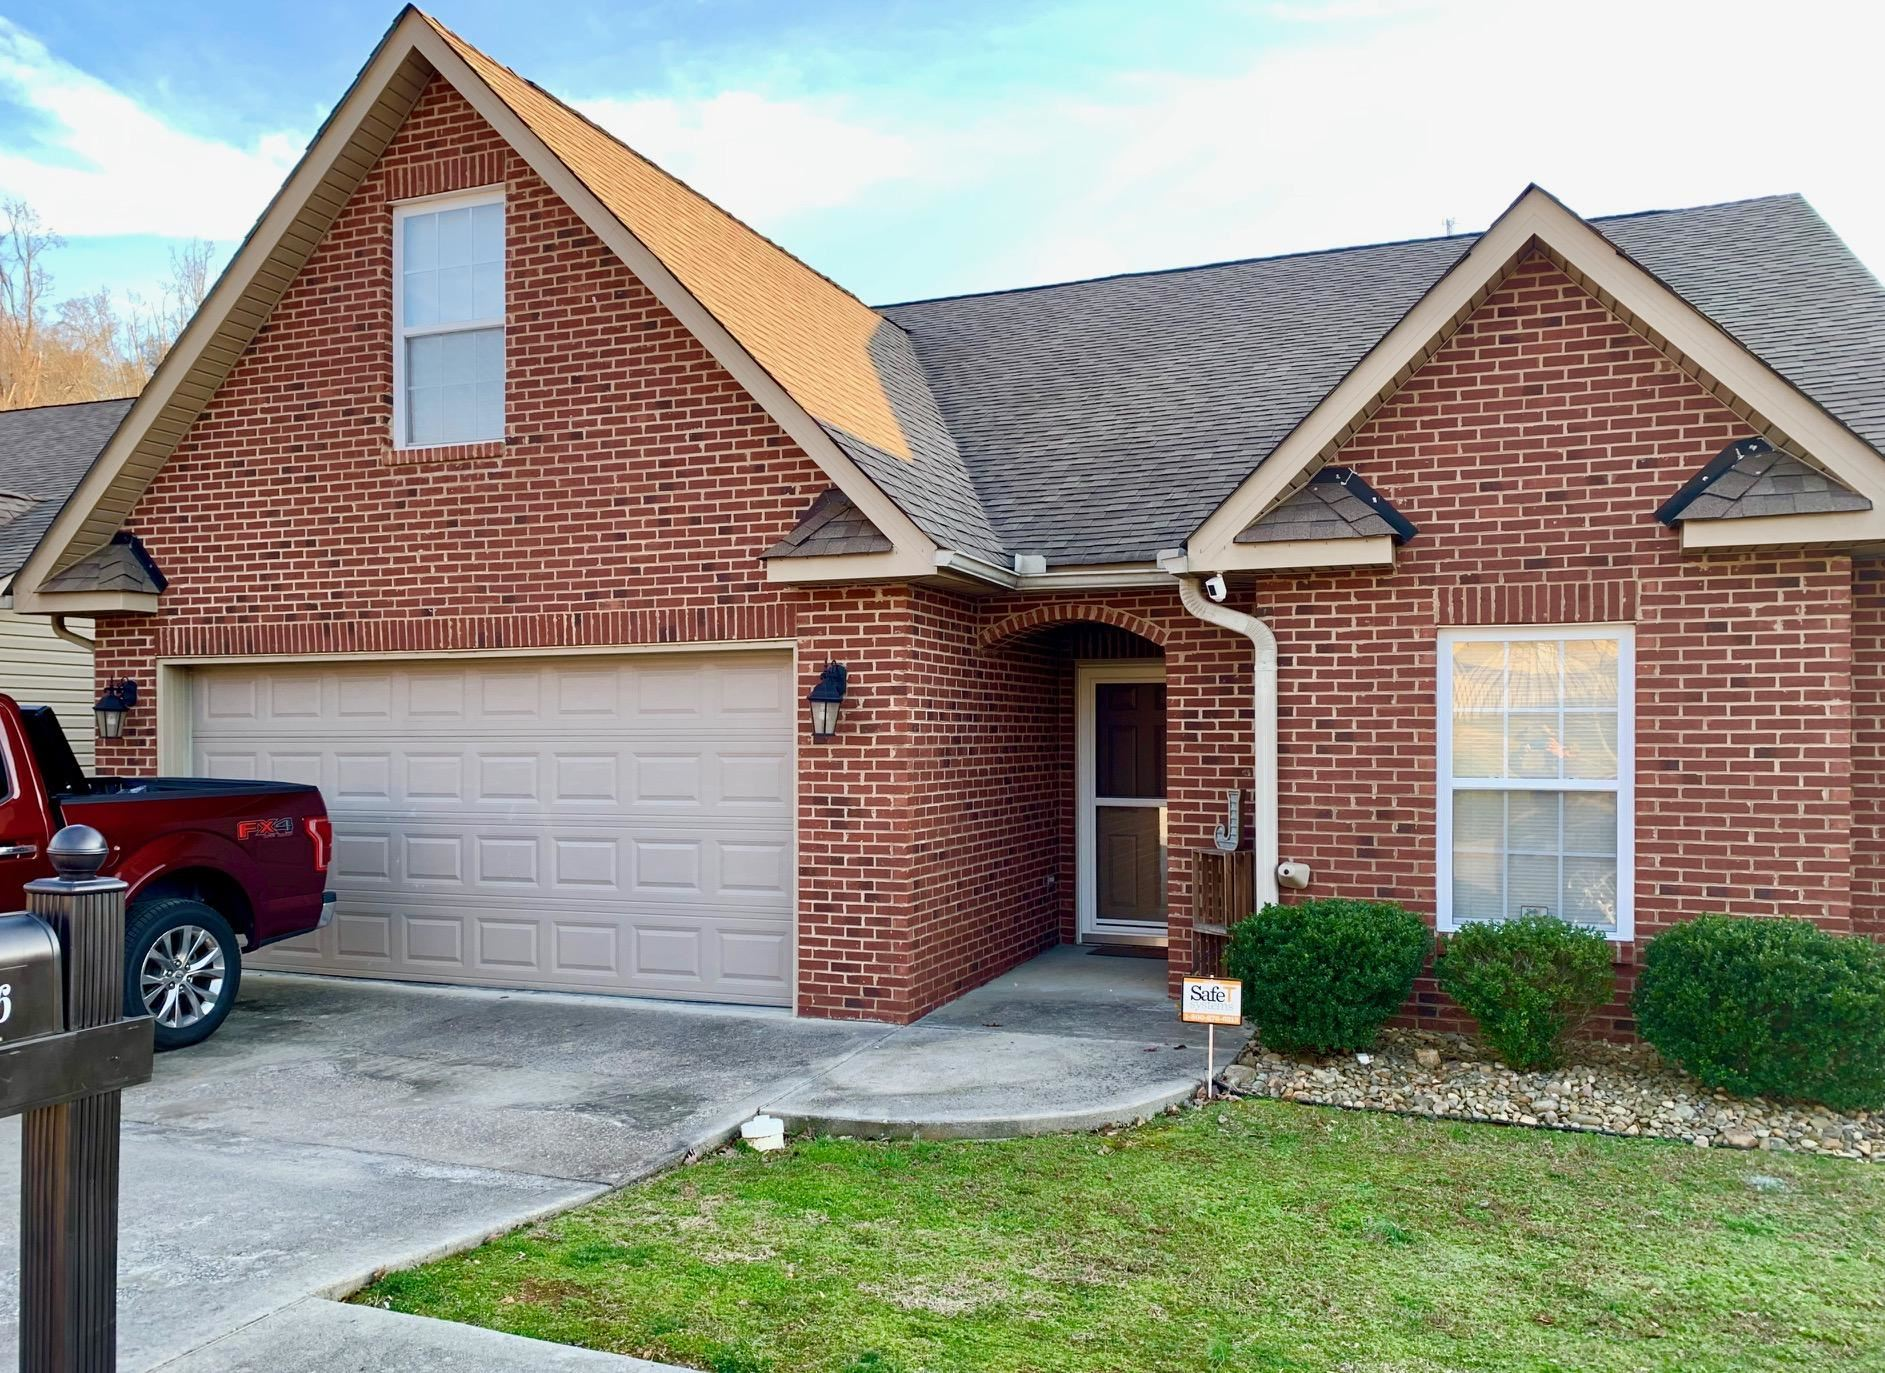 Photo of 10356 Iverson Lane, Knoxville, TN 37932 (MLS # 1108184)